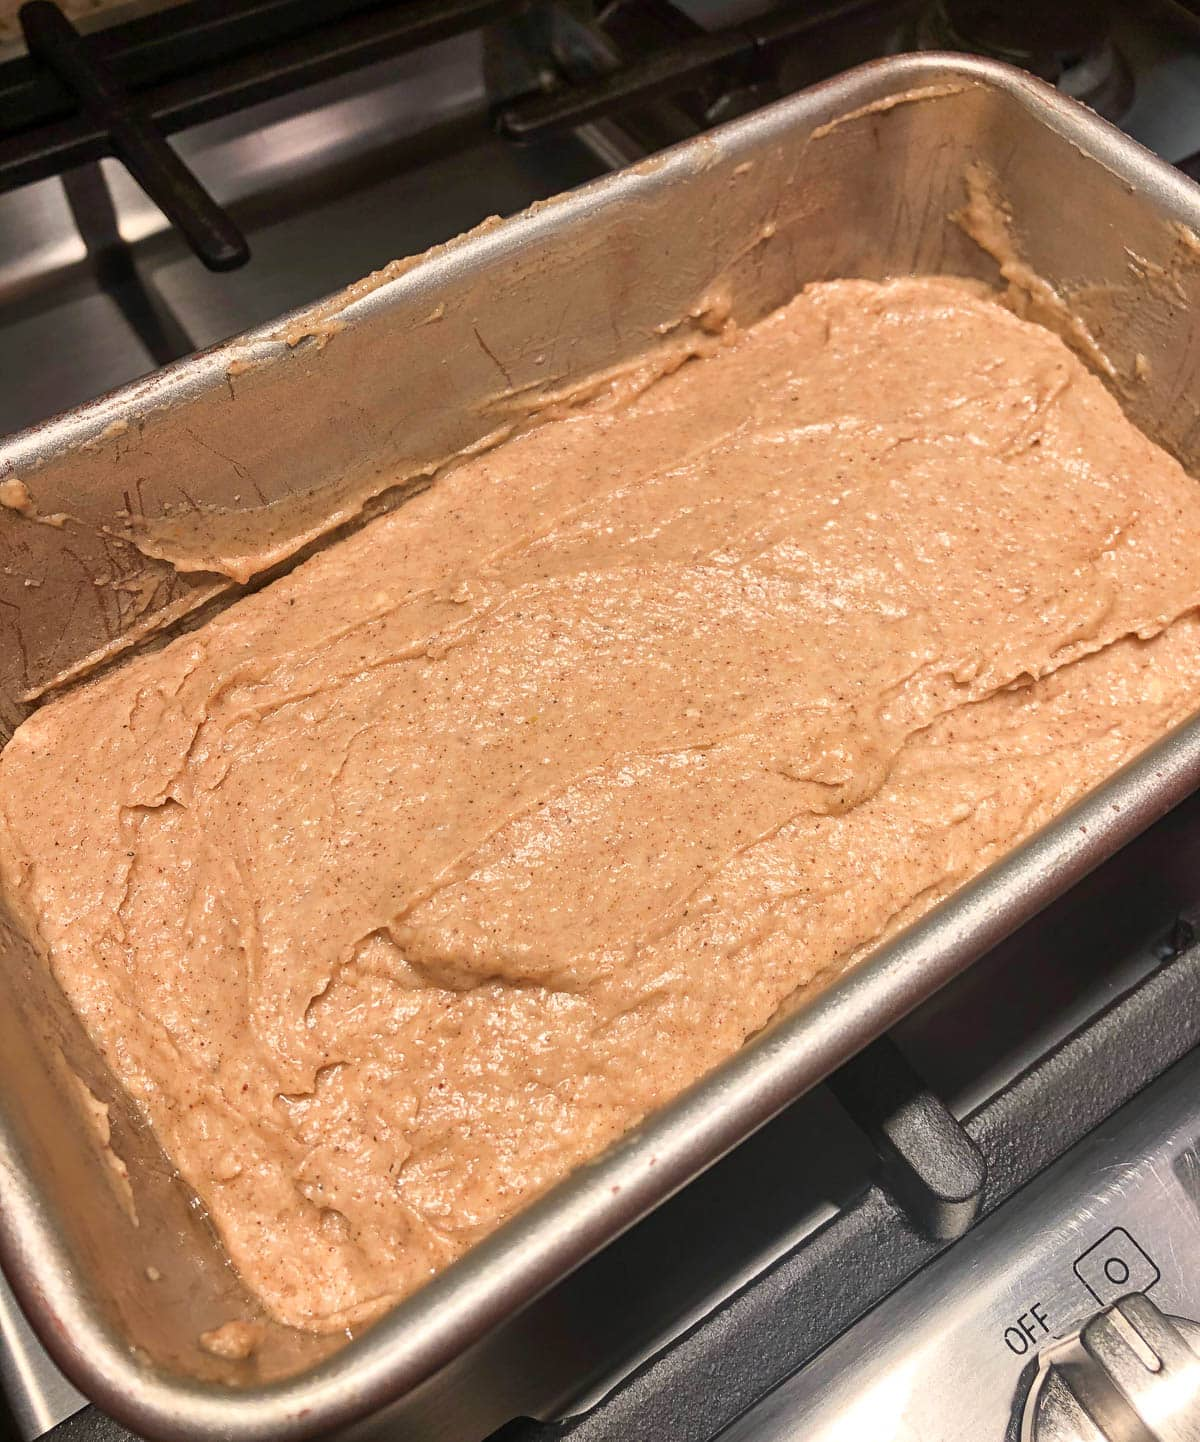 loaf batter ready for the oven